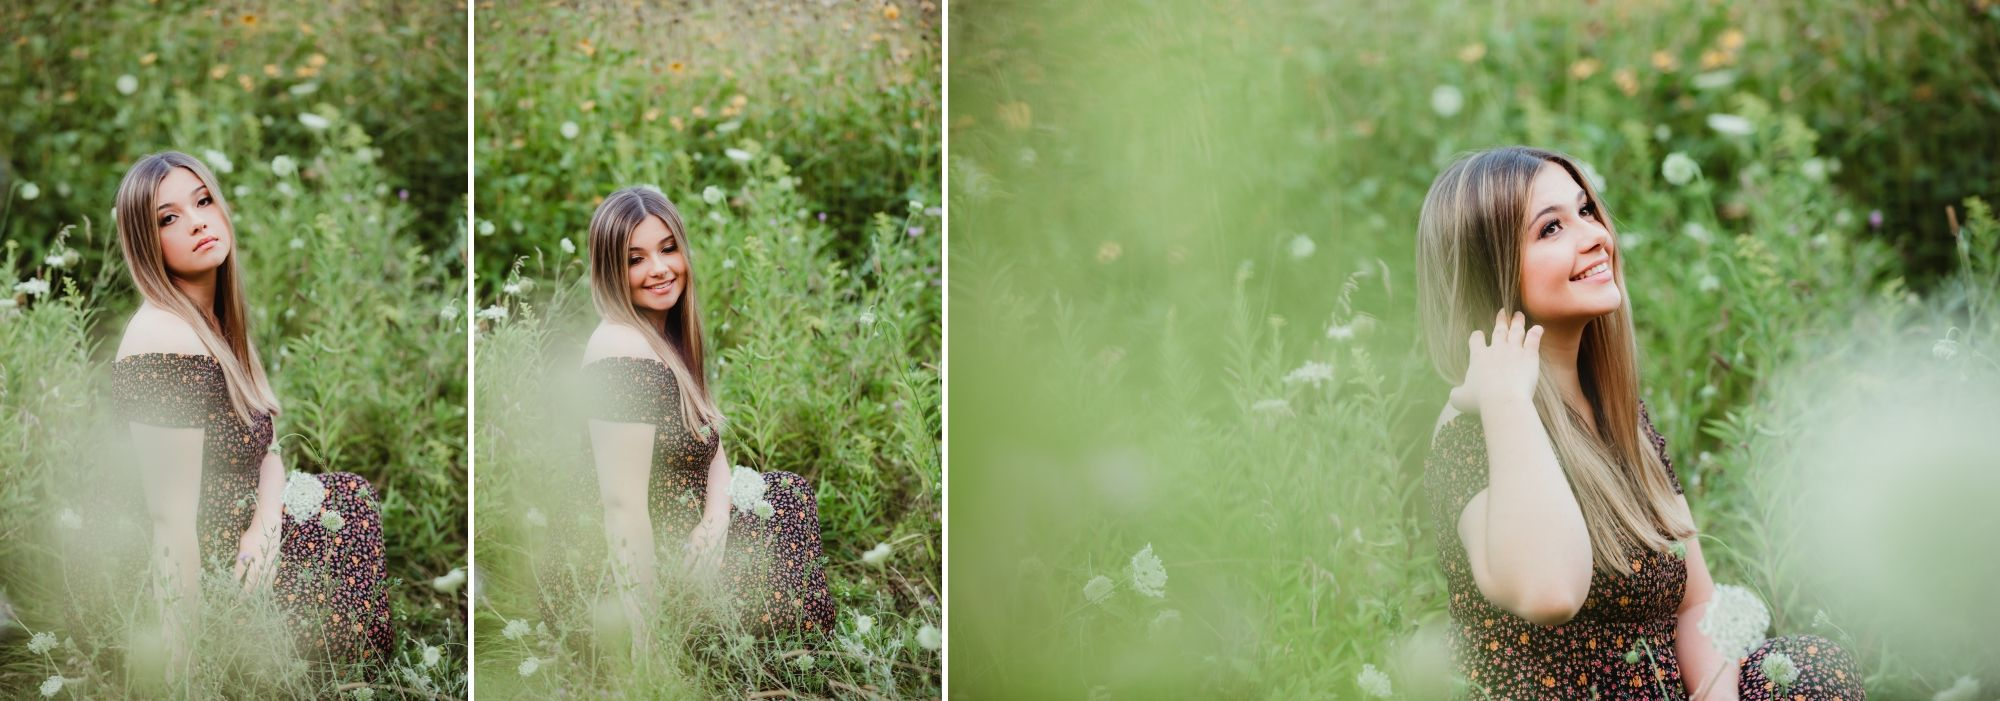 Collage of high school senior girl sitting in a field of long grass and flowers in a dark dress.